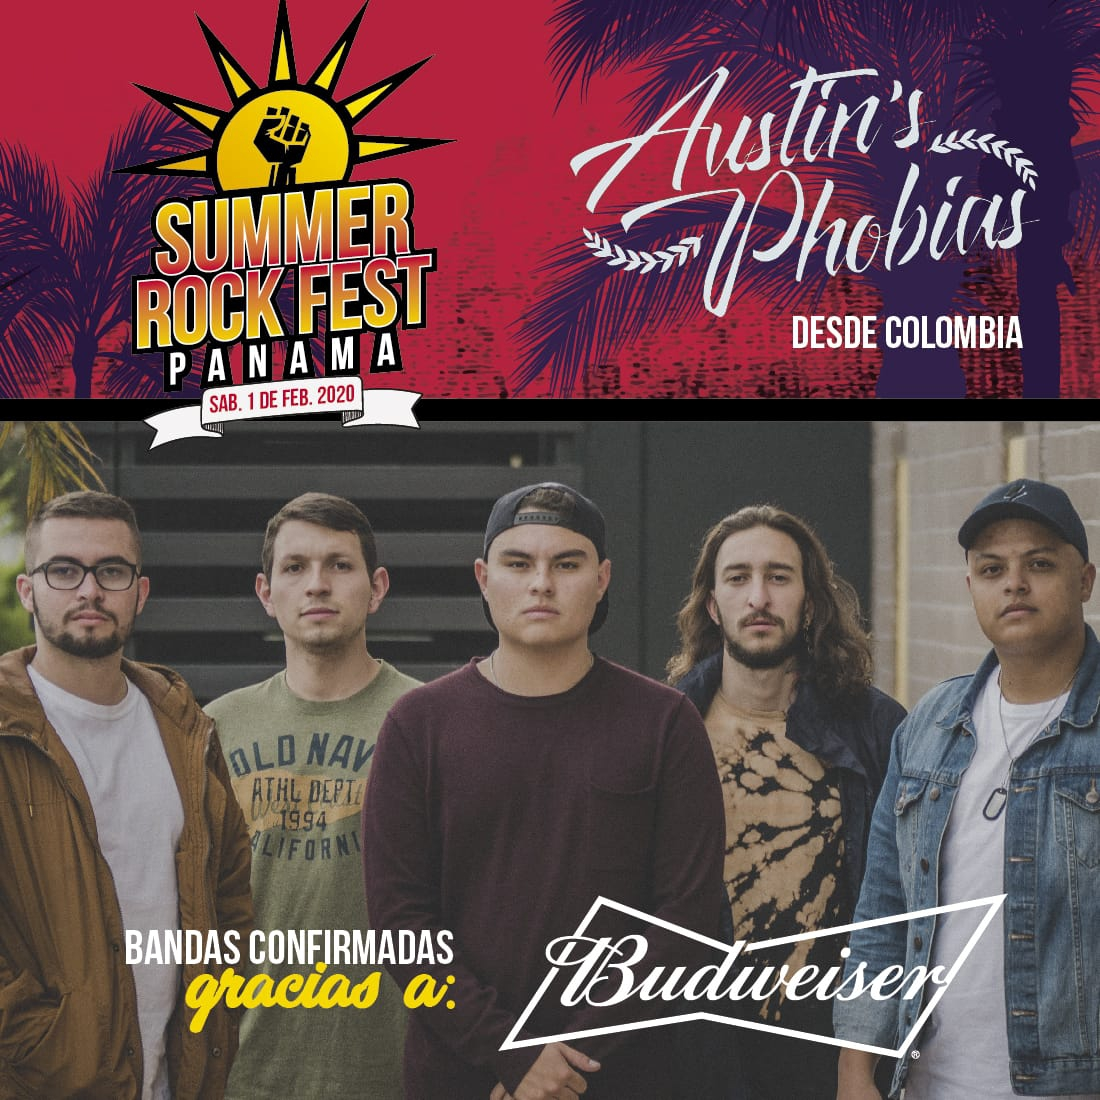 Summer Rock Fest Panama